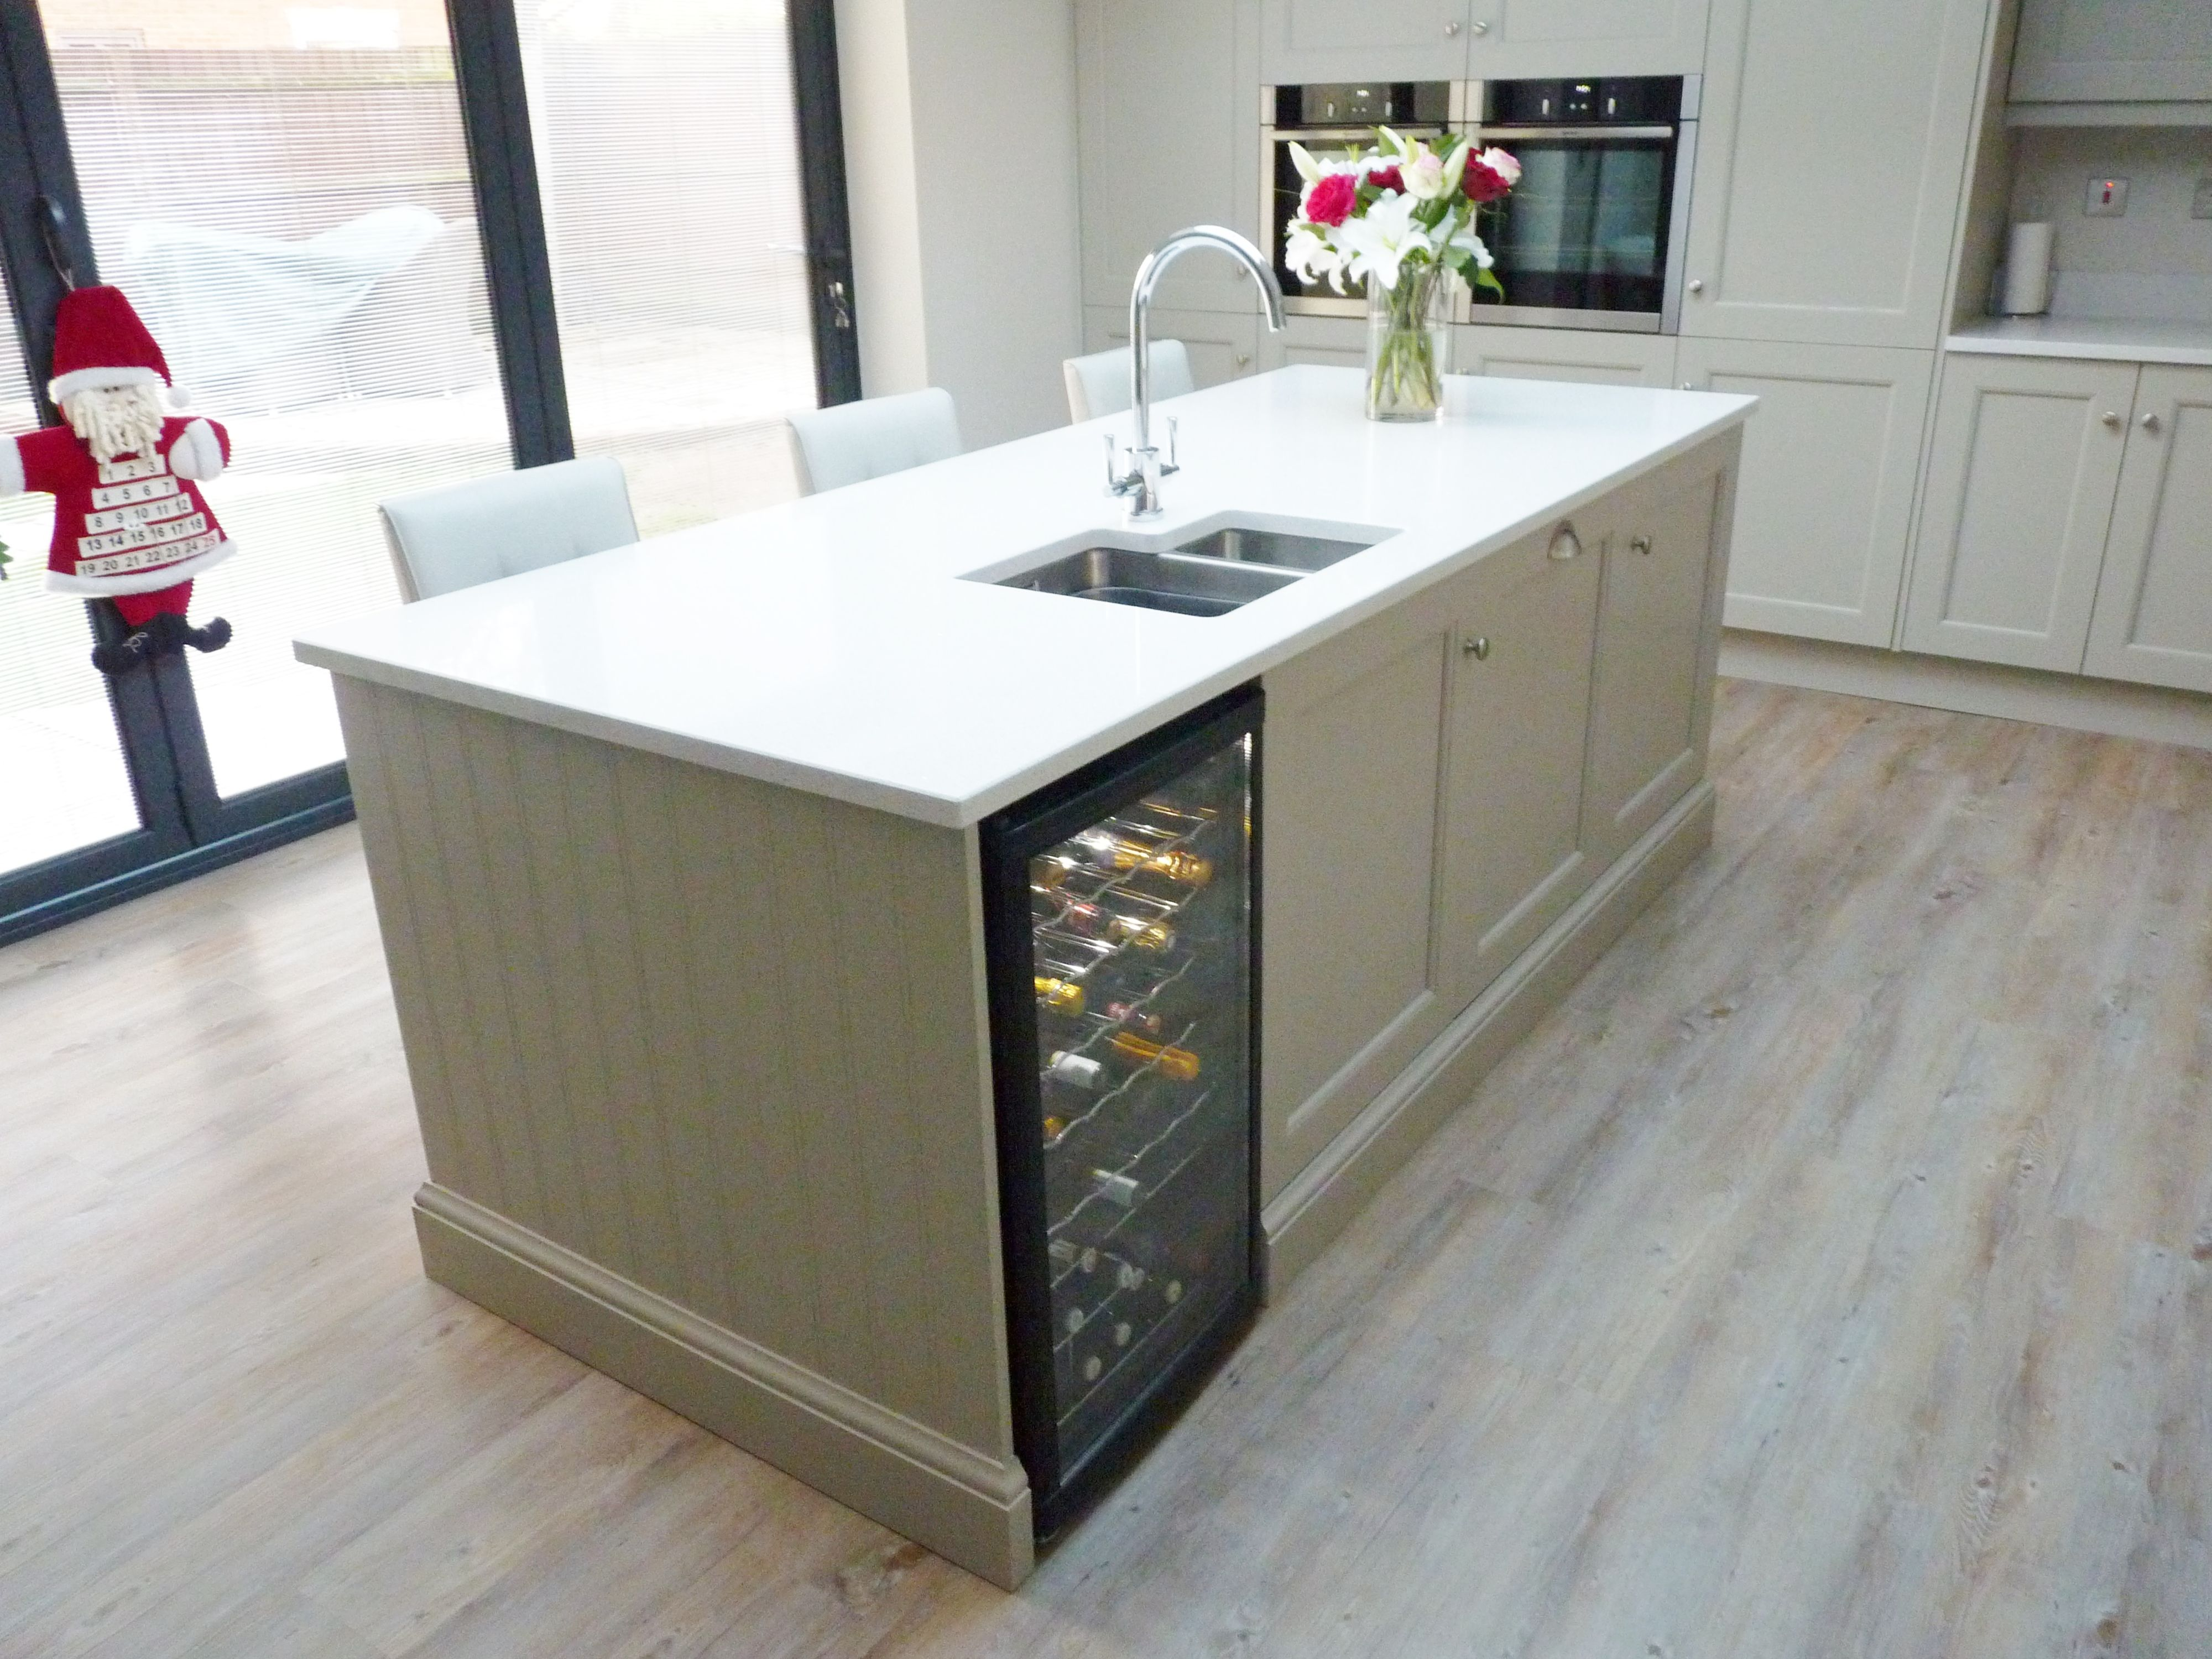 300mm Wide Wine Cooler In Stylish Island Stone Shaker Kitchen Angmering West Sussex Bn16 Shaker Kitchen Island Dark Green Kitchen Shaker Kitchen